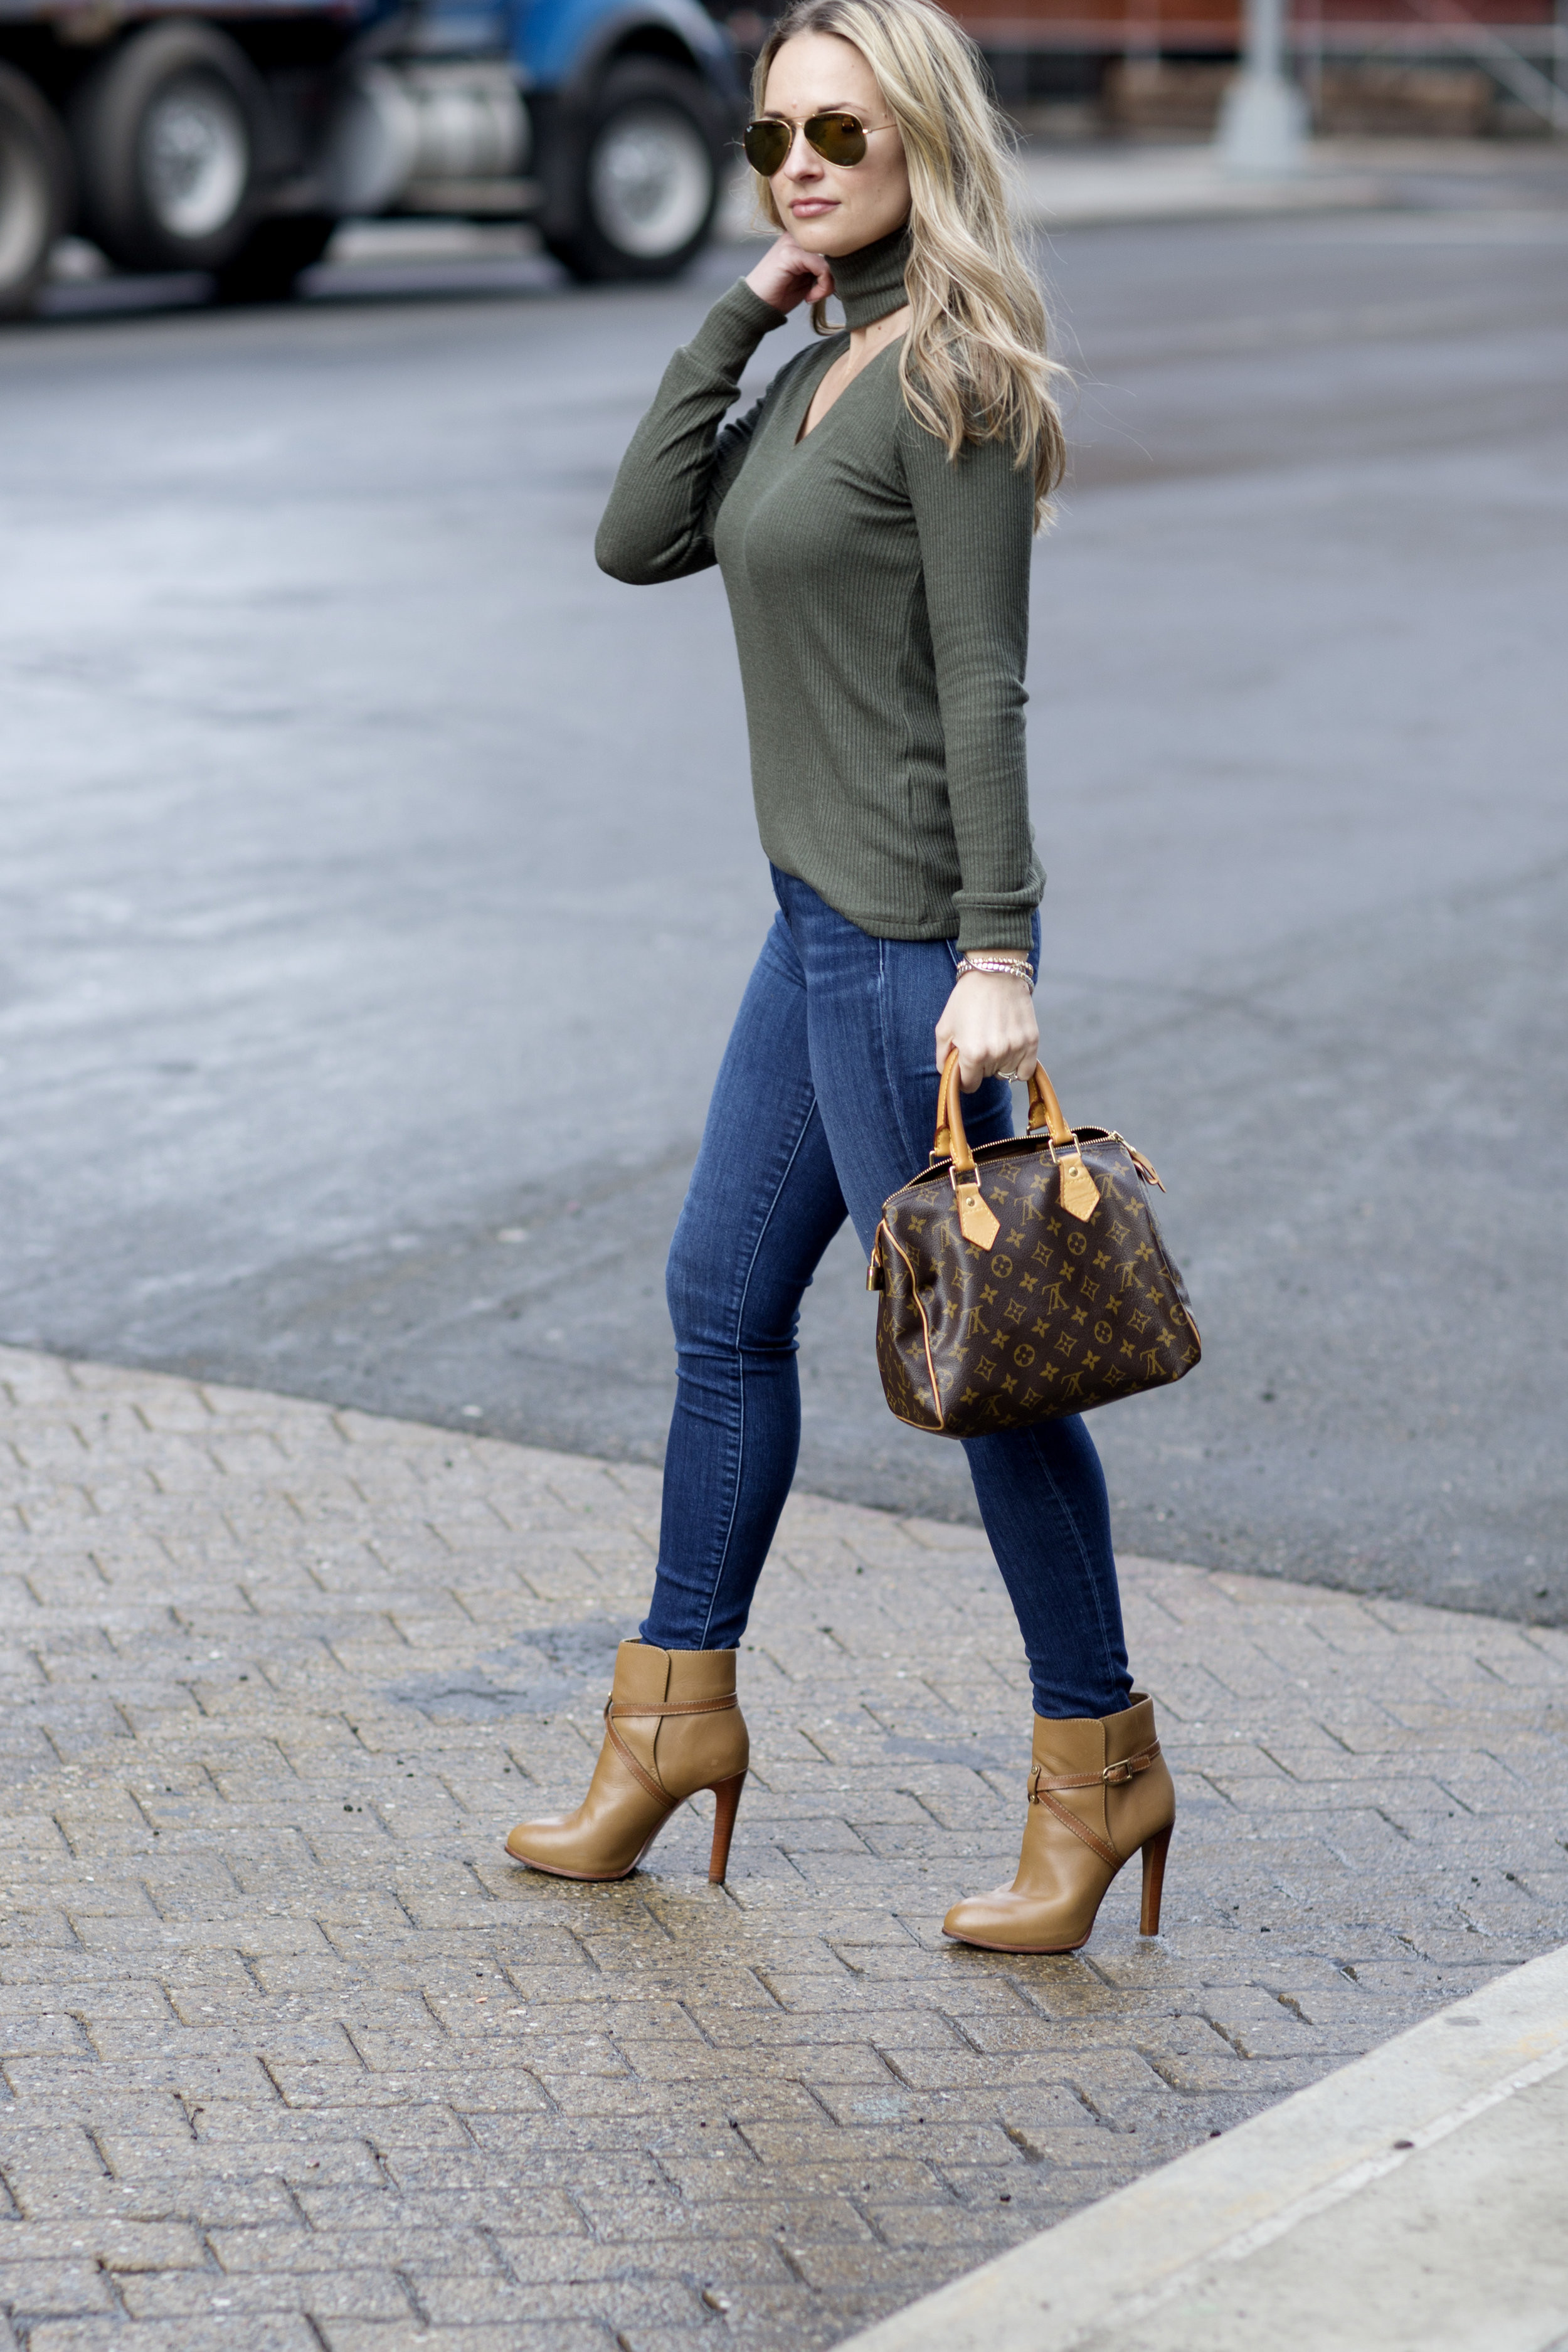 lna clothing olive green sweater